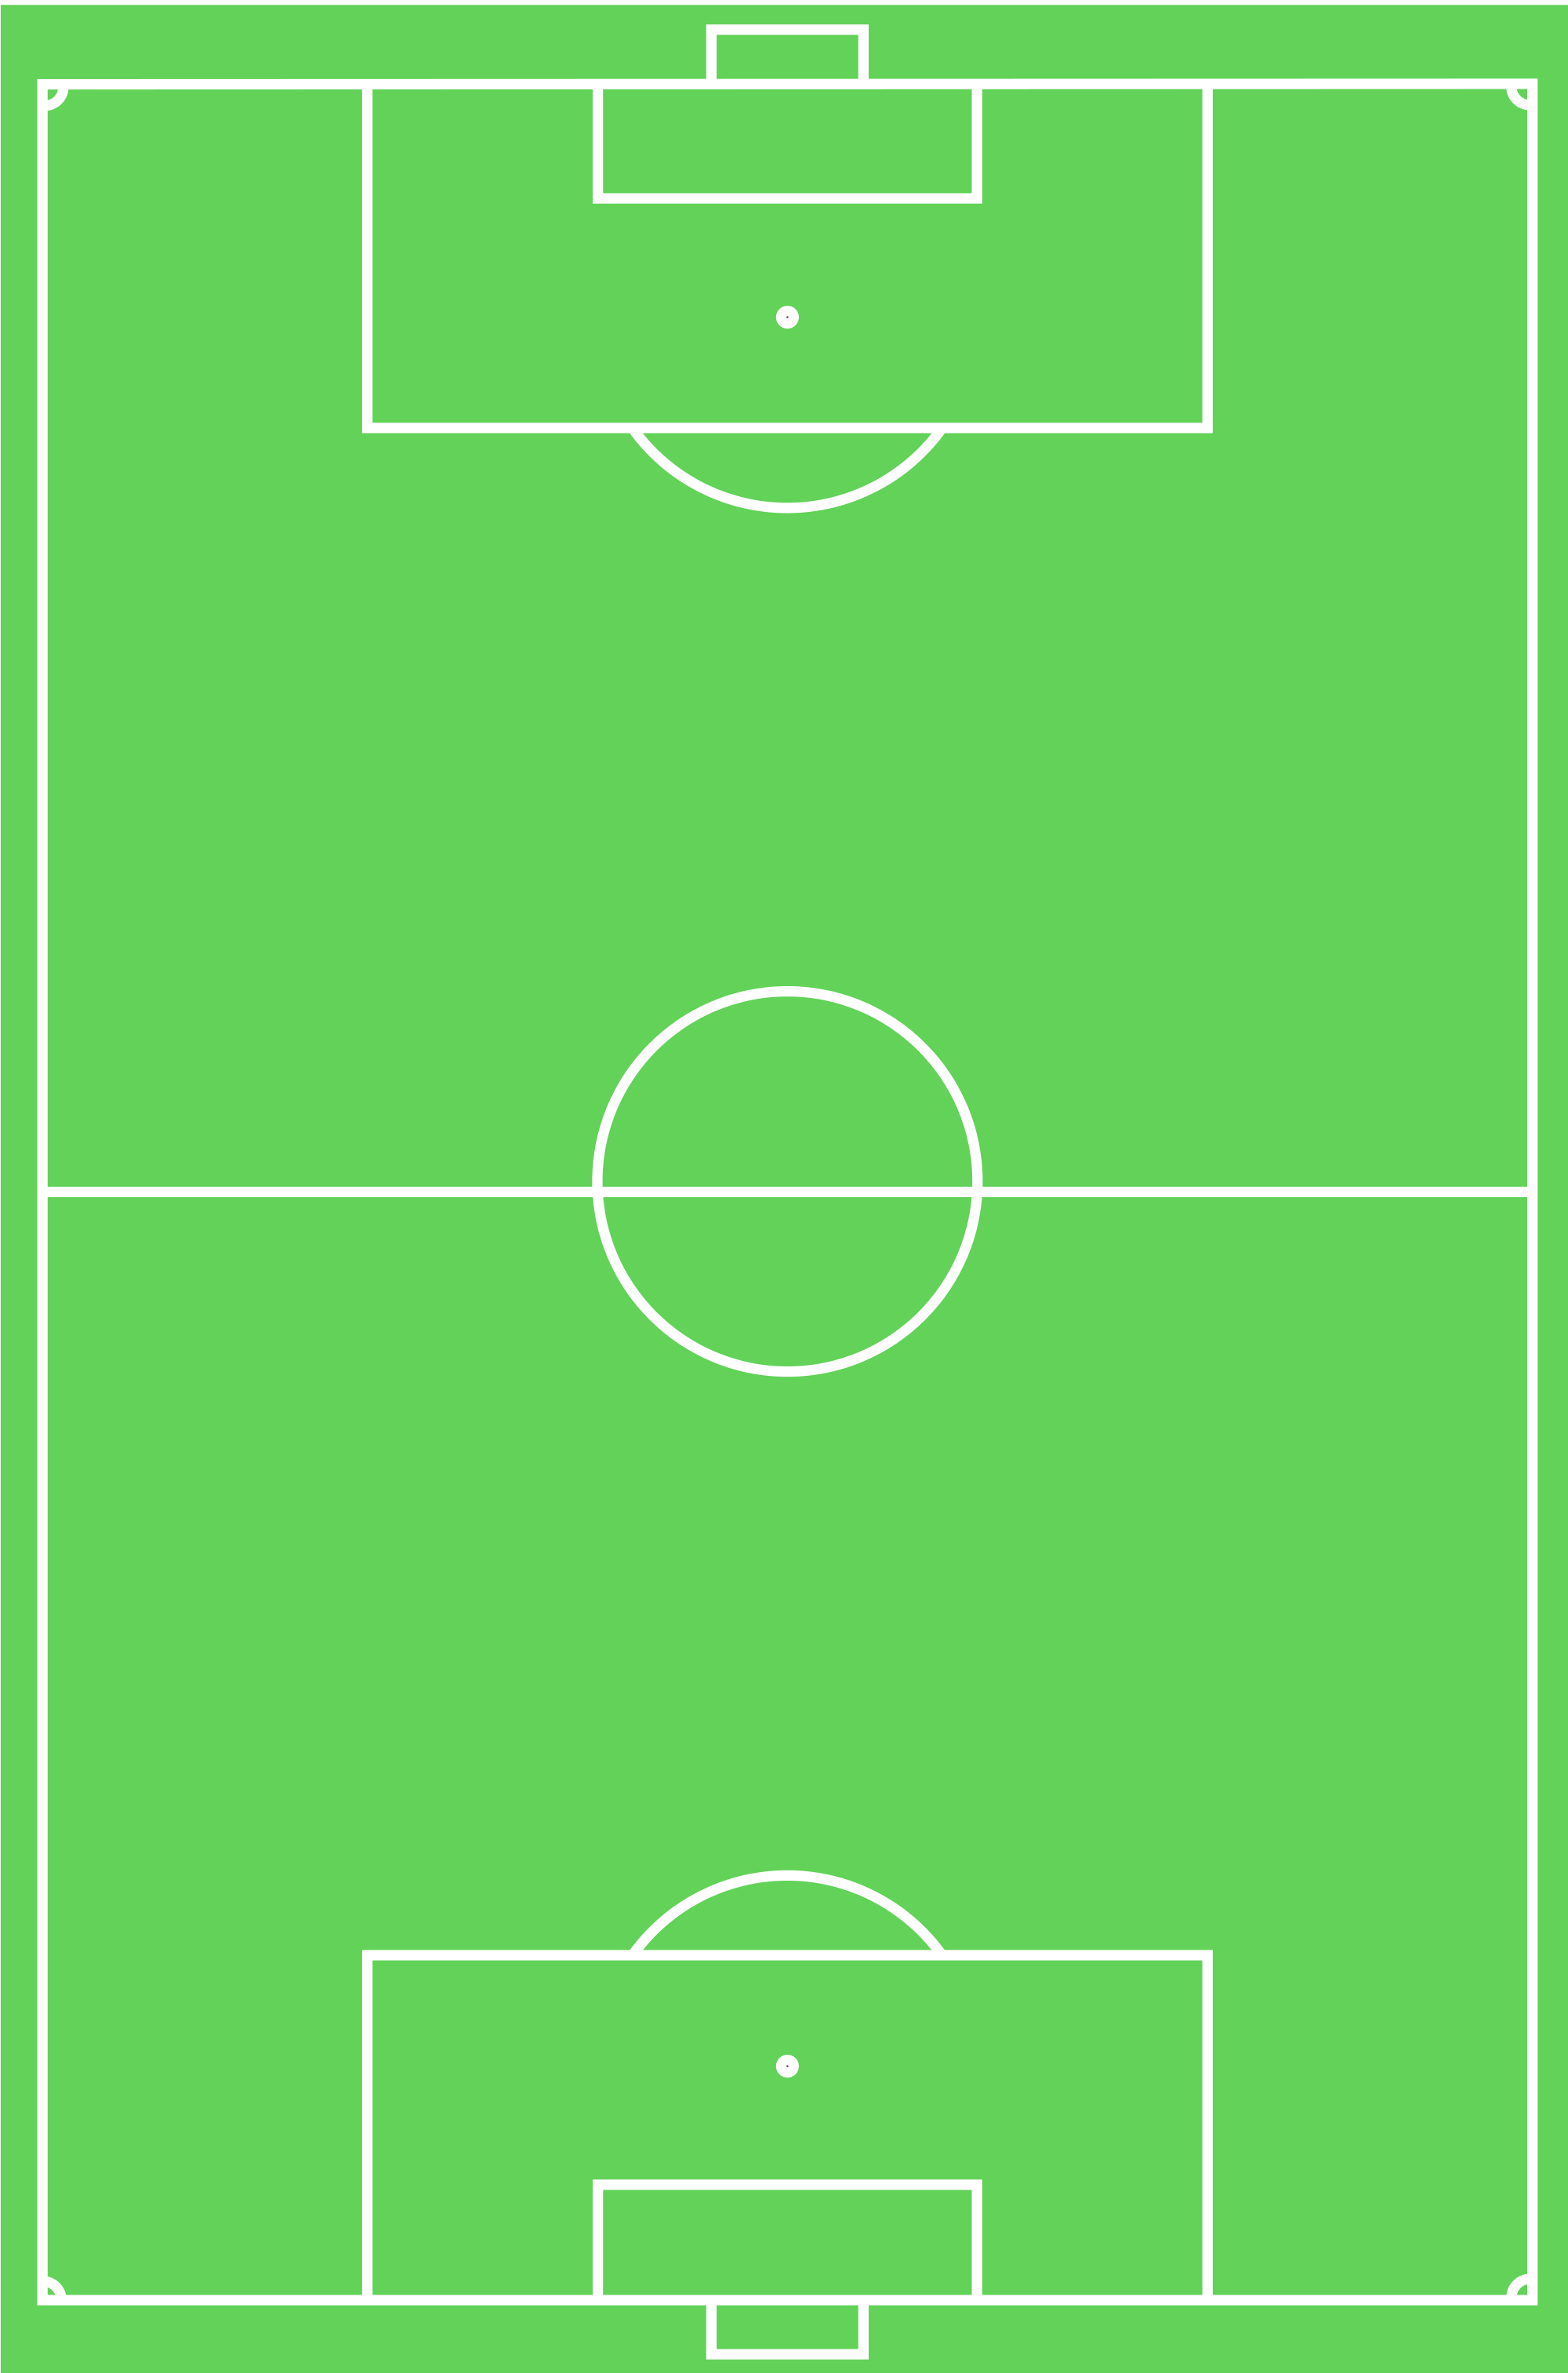 Soccer field diagram fill electrical work wiring diagram soccer field layout correct dimensions markings and cake on rh pinterest com soccer field clip art ccuart Image collections